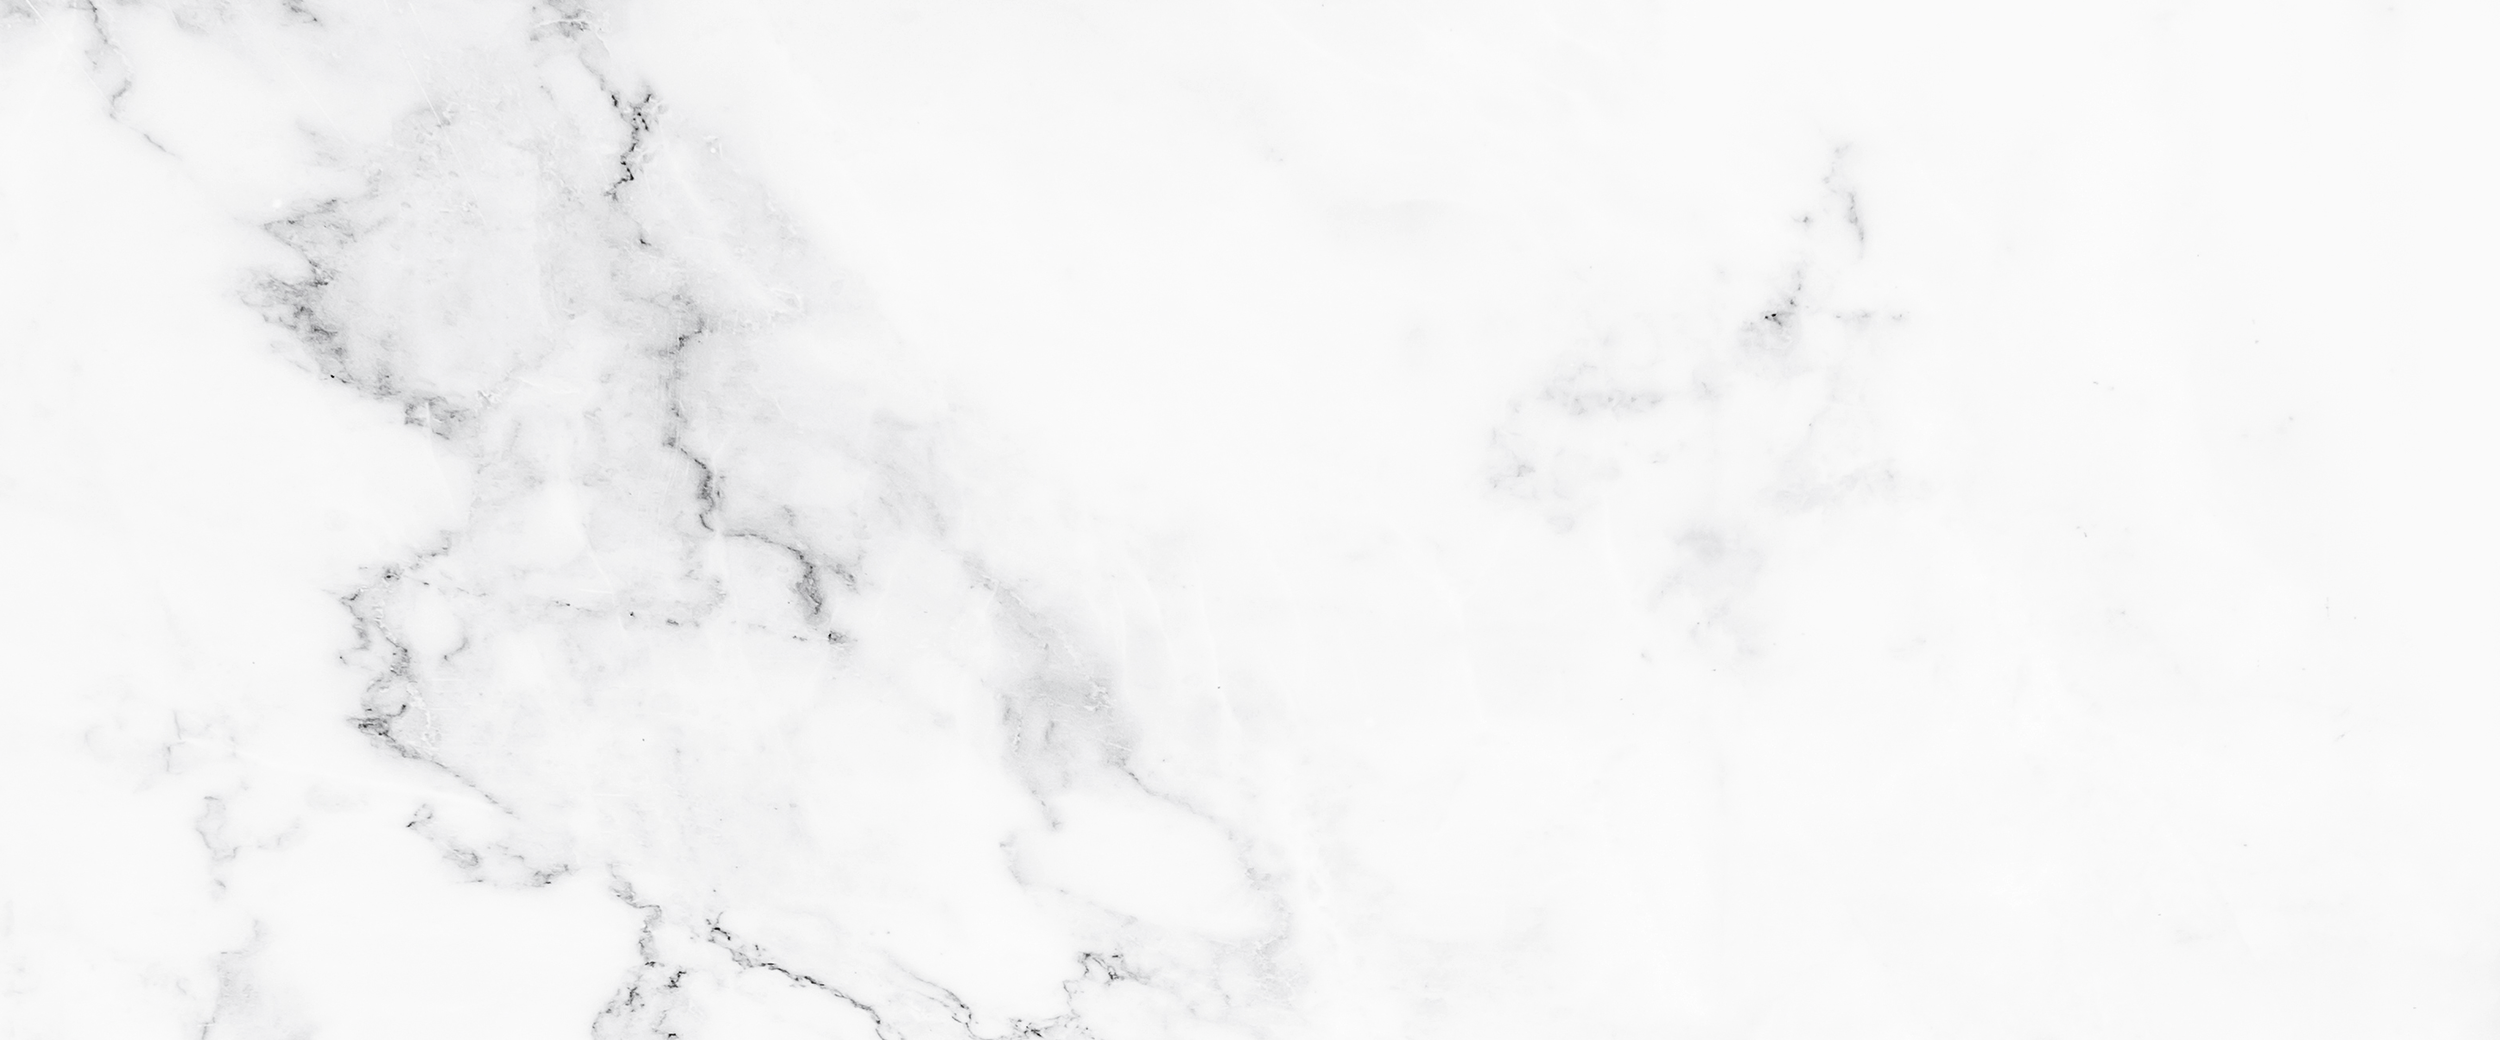 Marble Background Png & Free Marble Background.png.